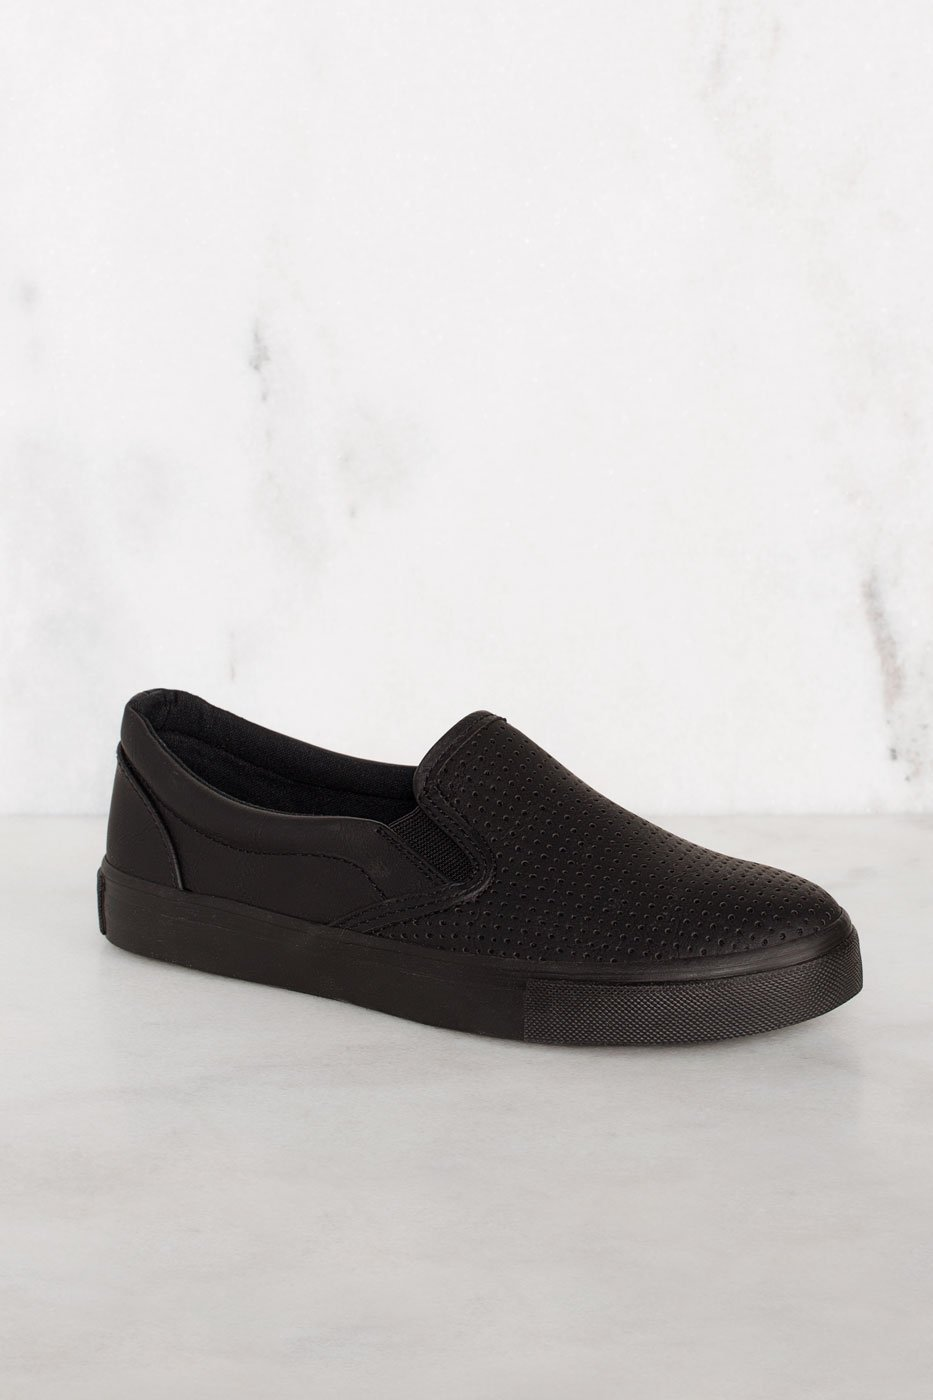 9514081992d34 Second Nature Slip-On Sneakers - All Black | Fortune Dynamic